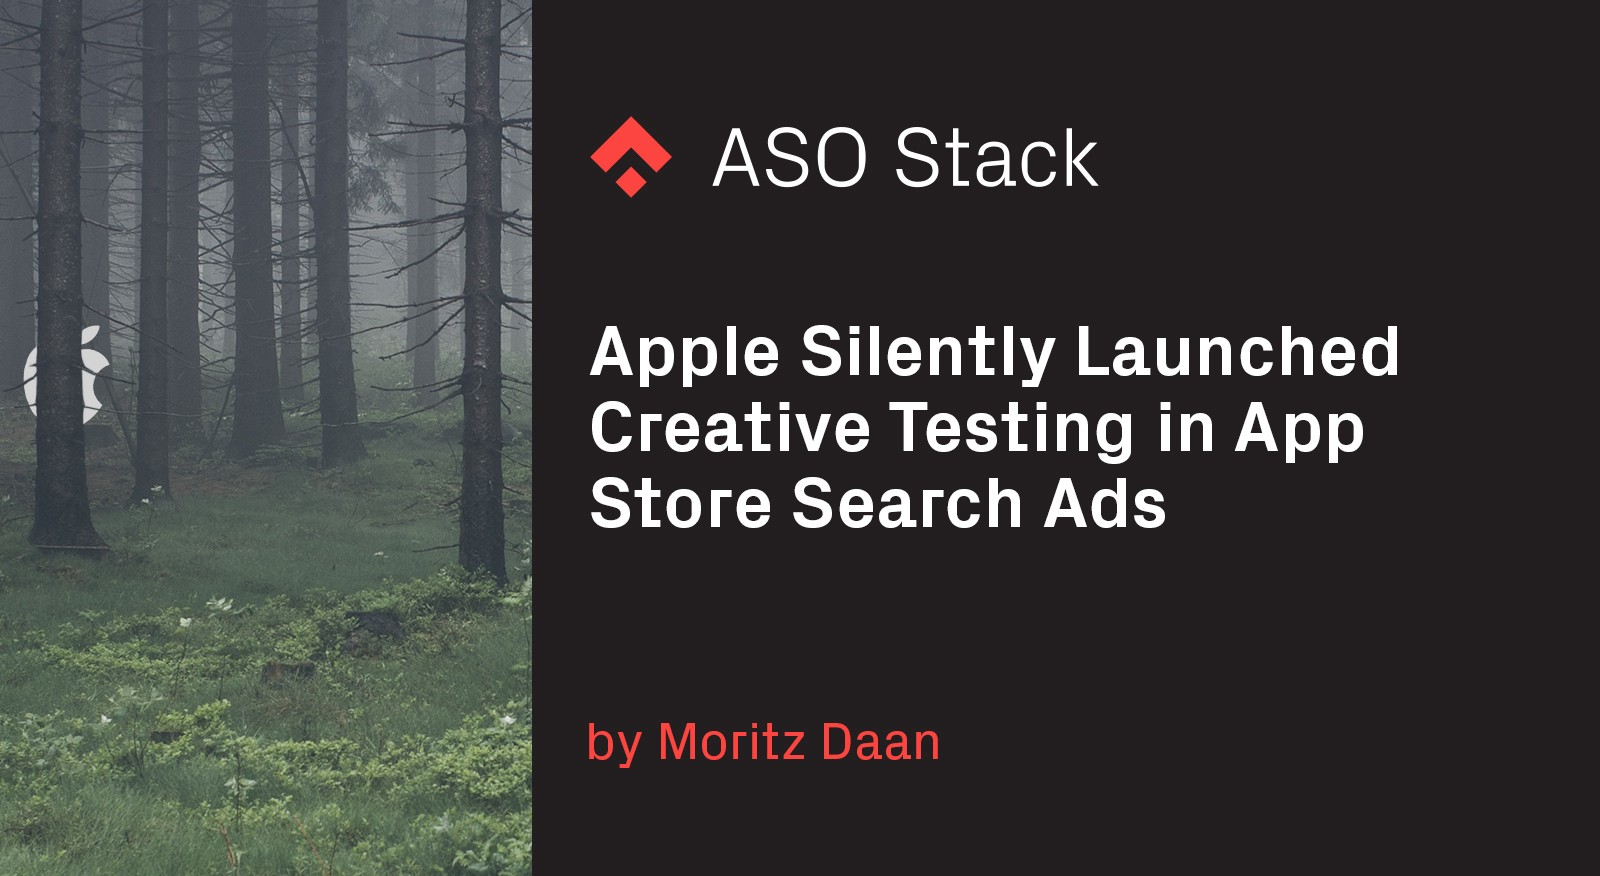 Apple Silently Launched Creative Testing in App Store Search